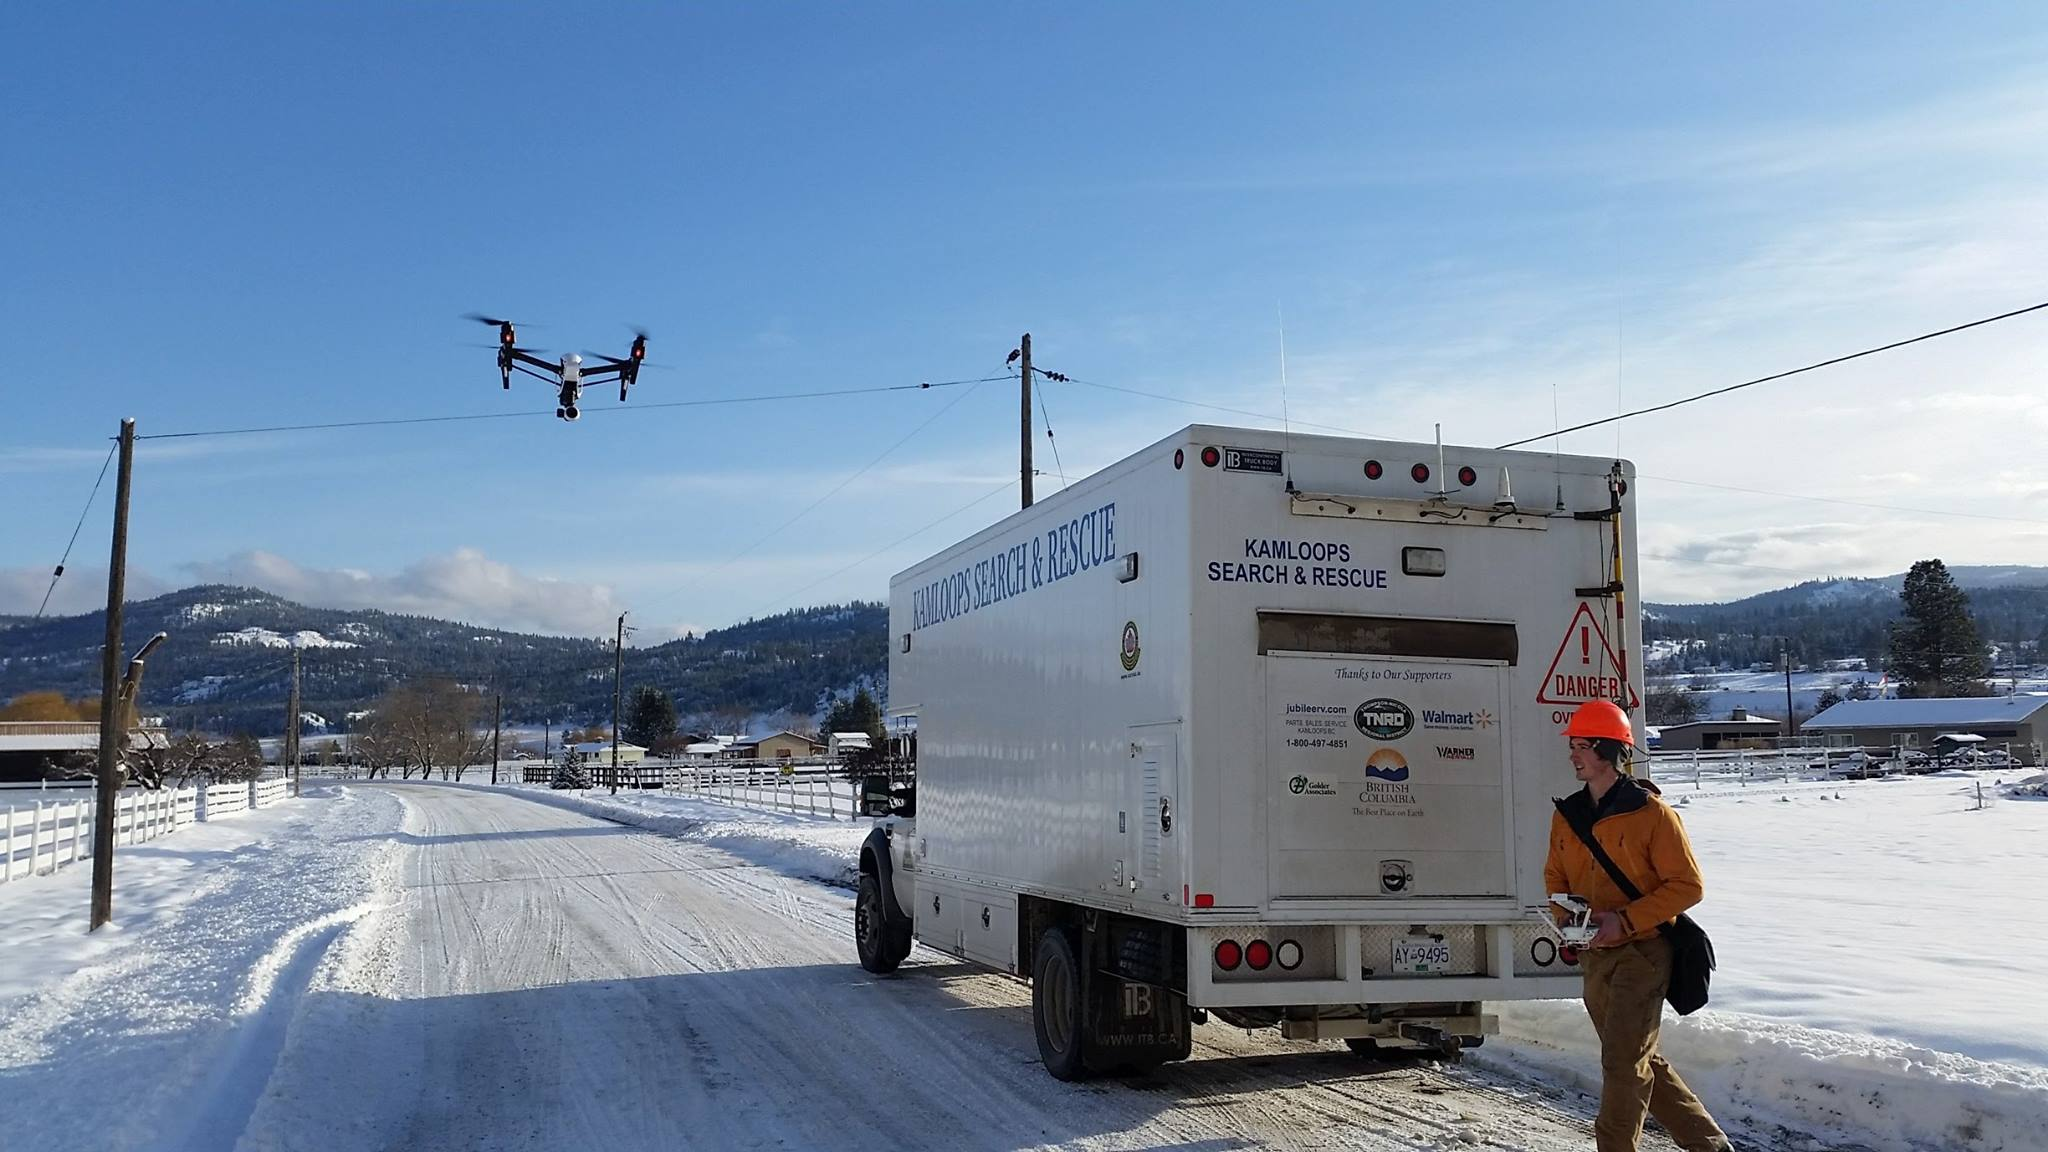 Kamloops Search and Rescue Says Drones are Effective Tool